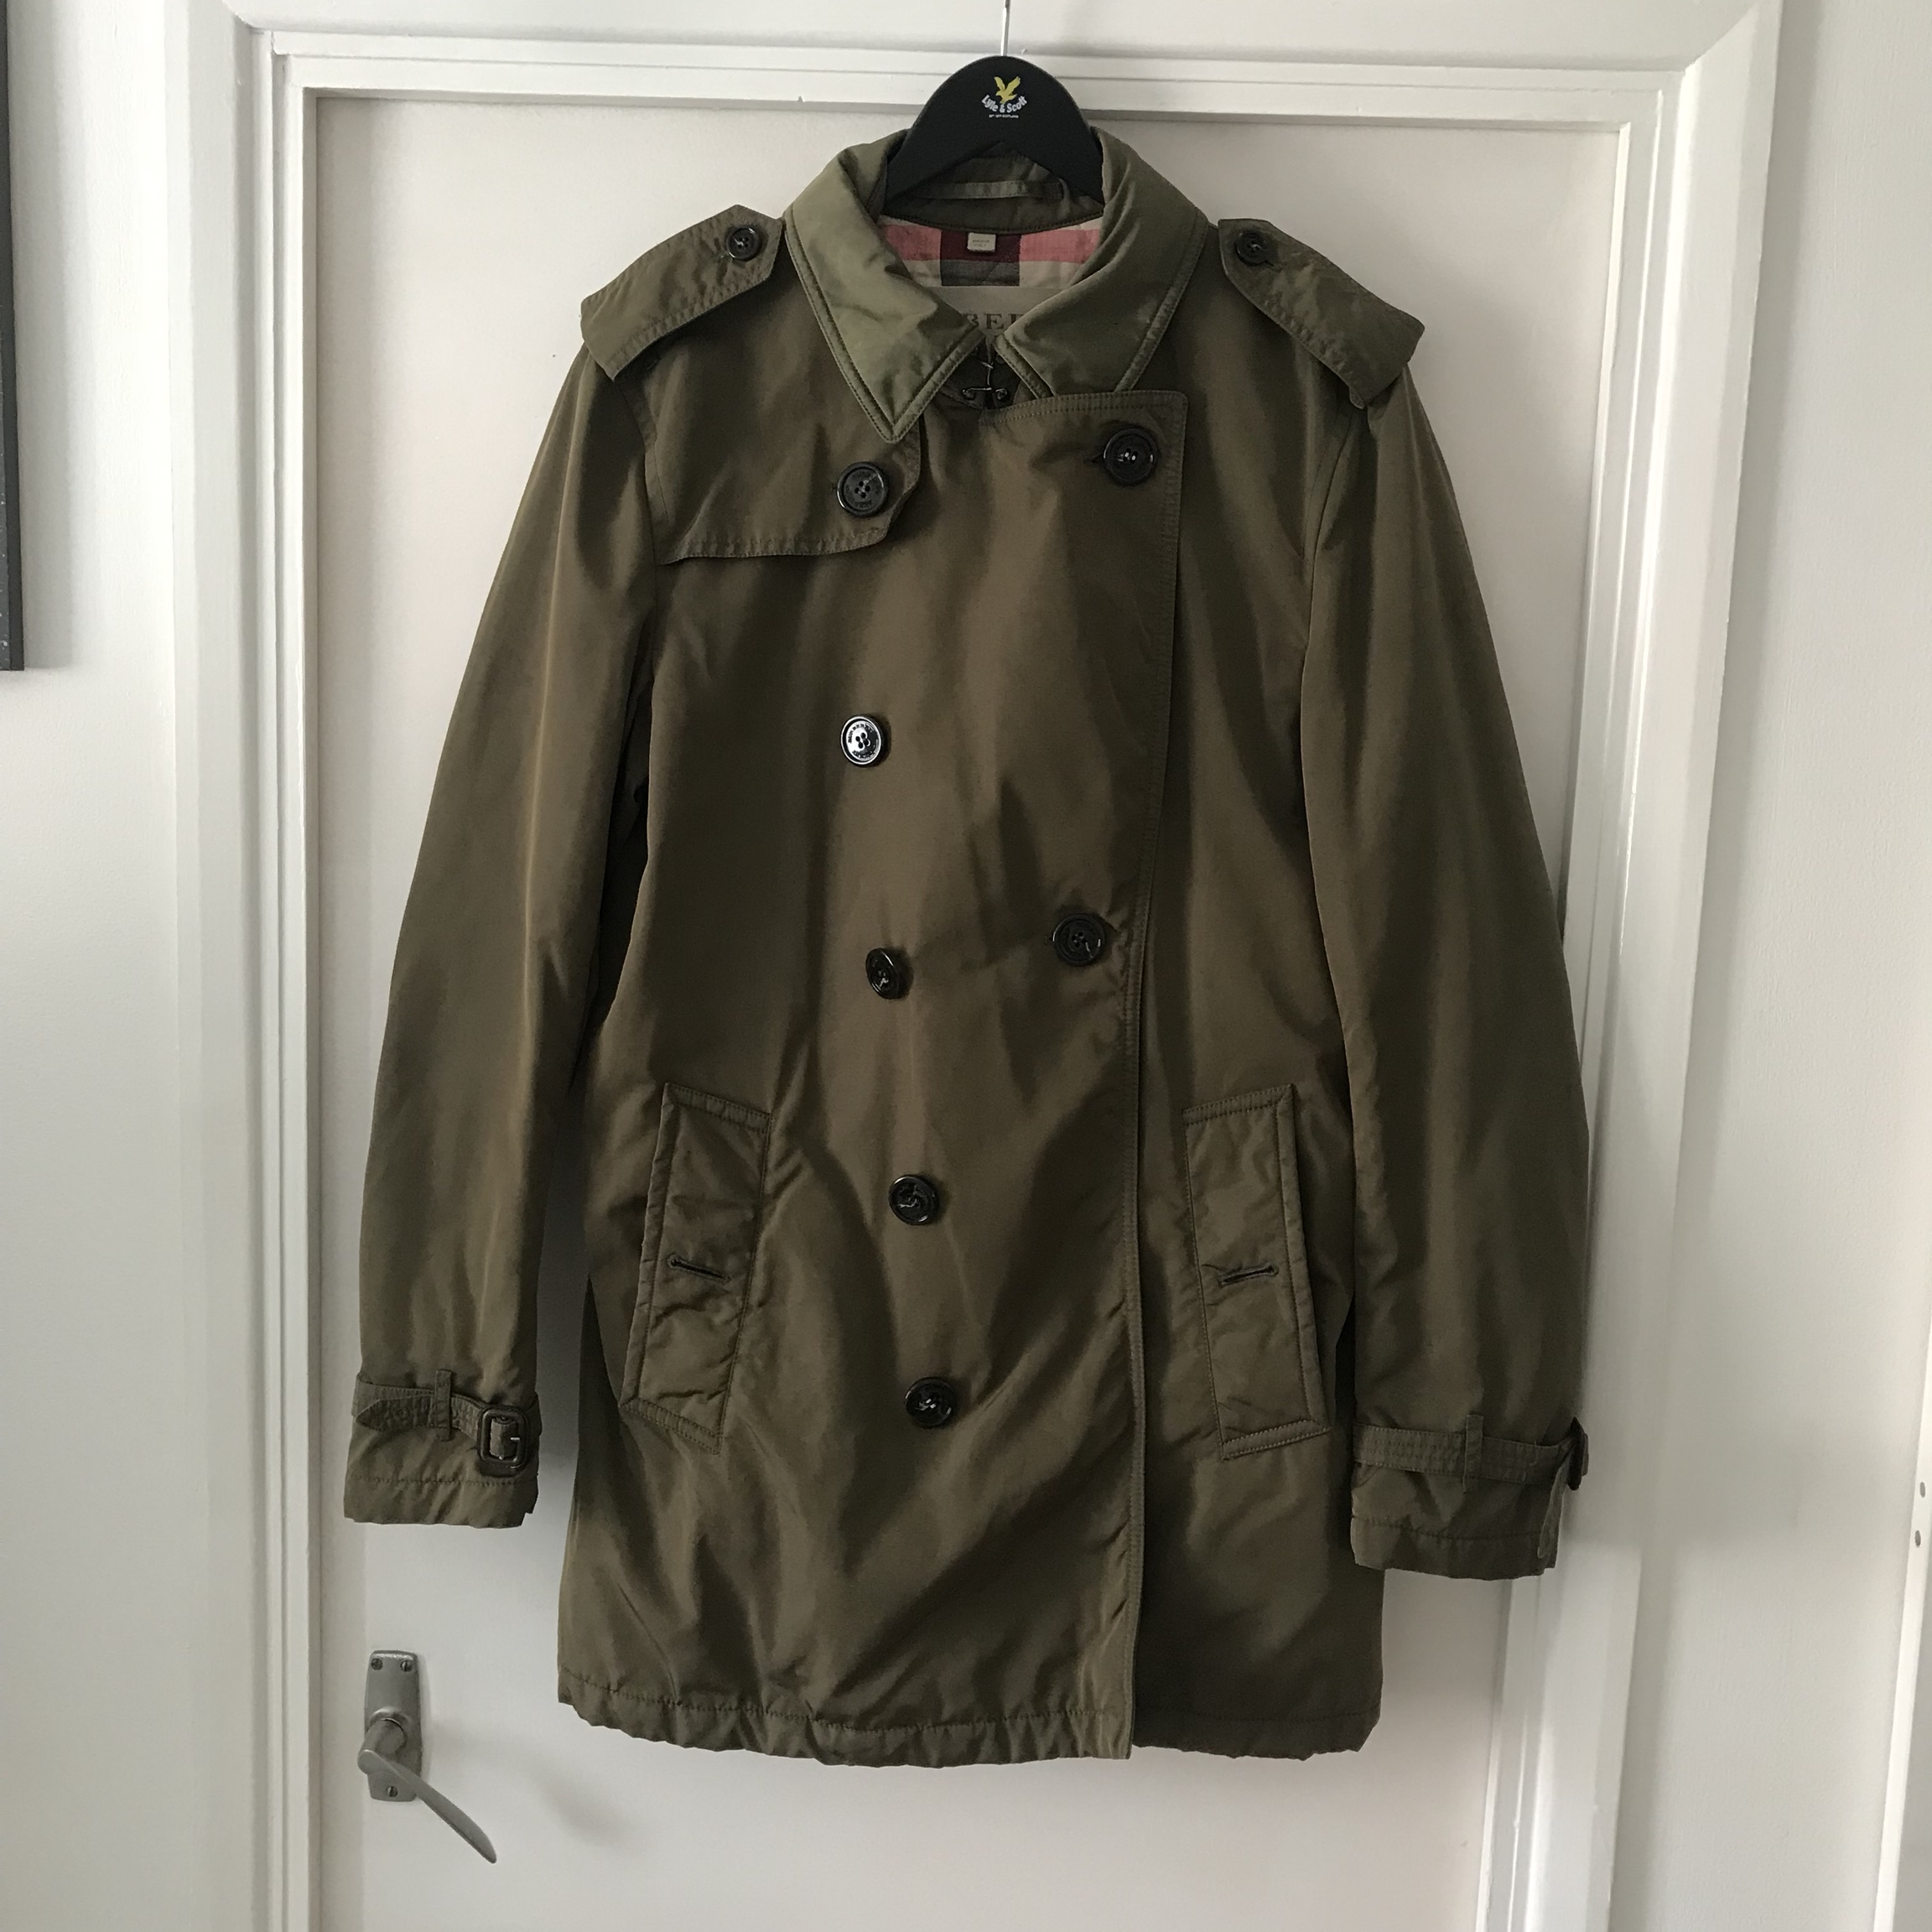 Burberry Mac jacketcoat Made in Italy Size M Depop